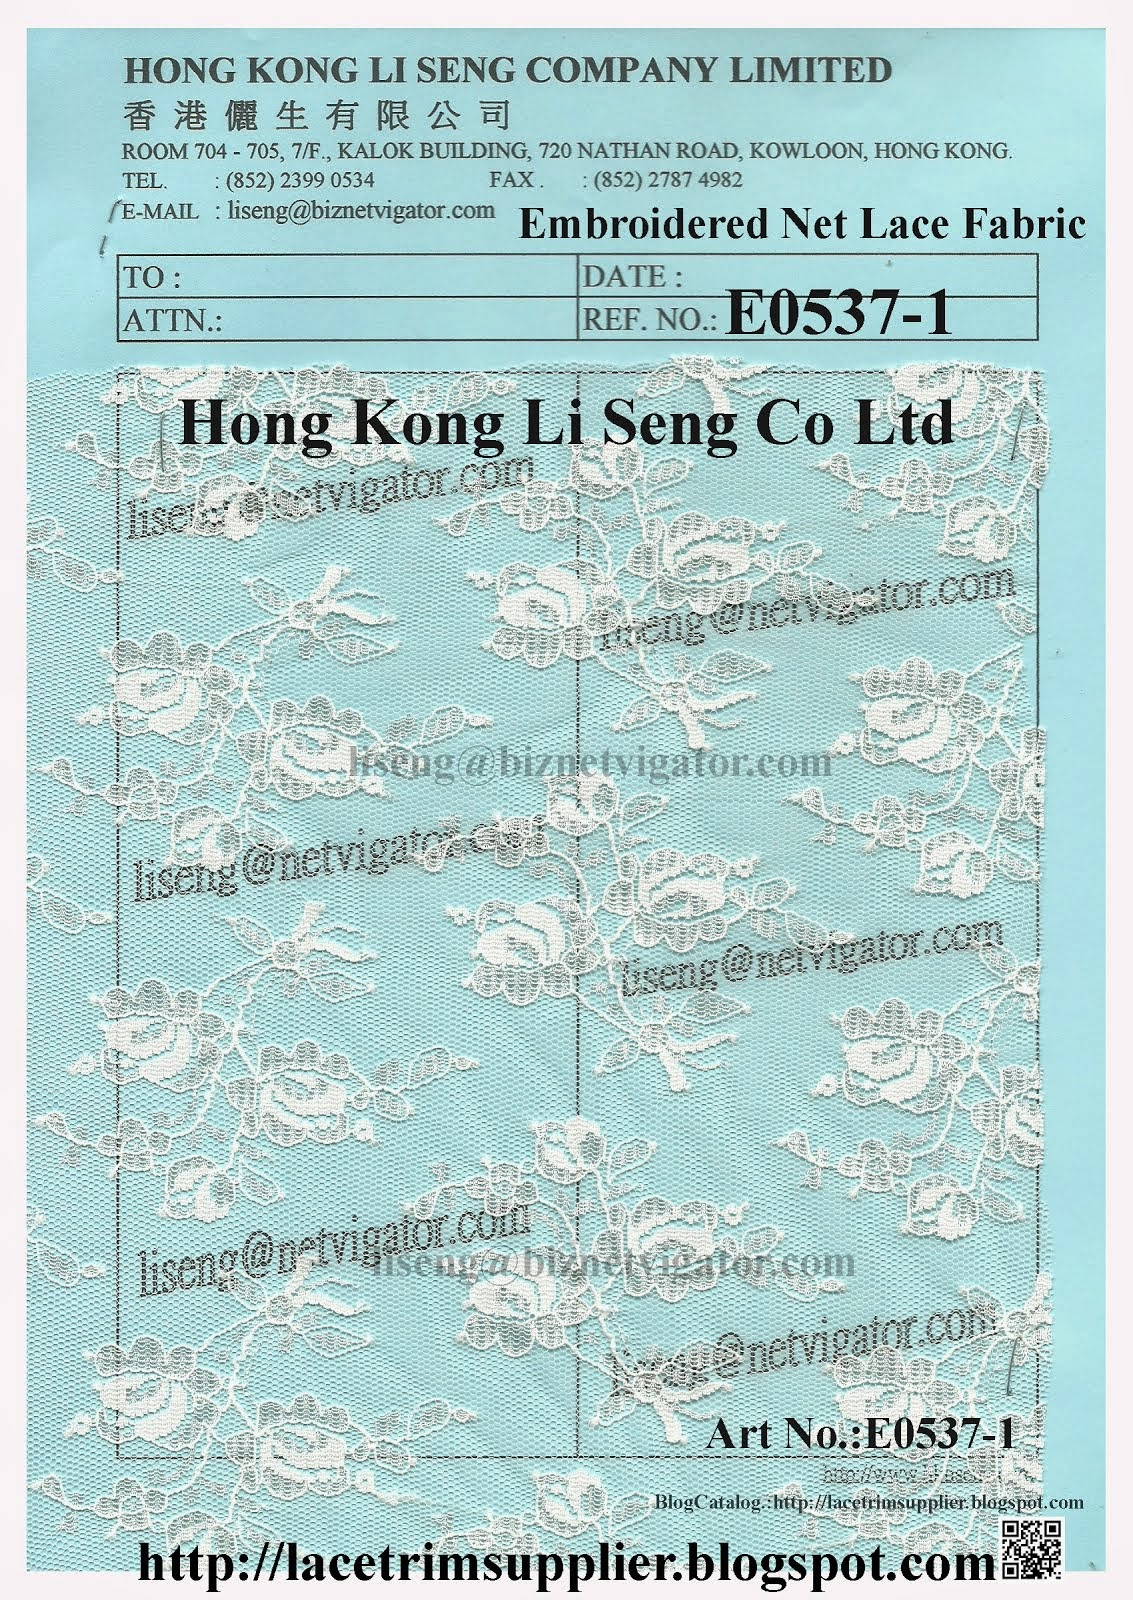 Embroidered Net Fabric Factory - Hong Kong Li Seng Co Ltd